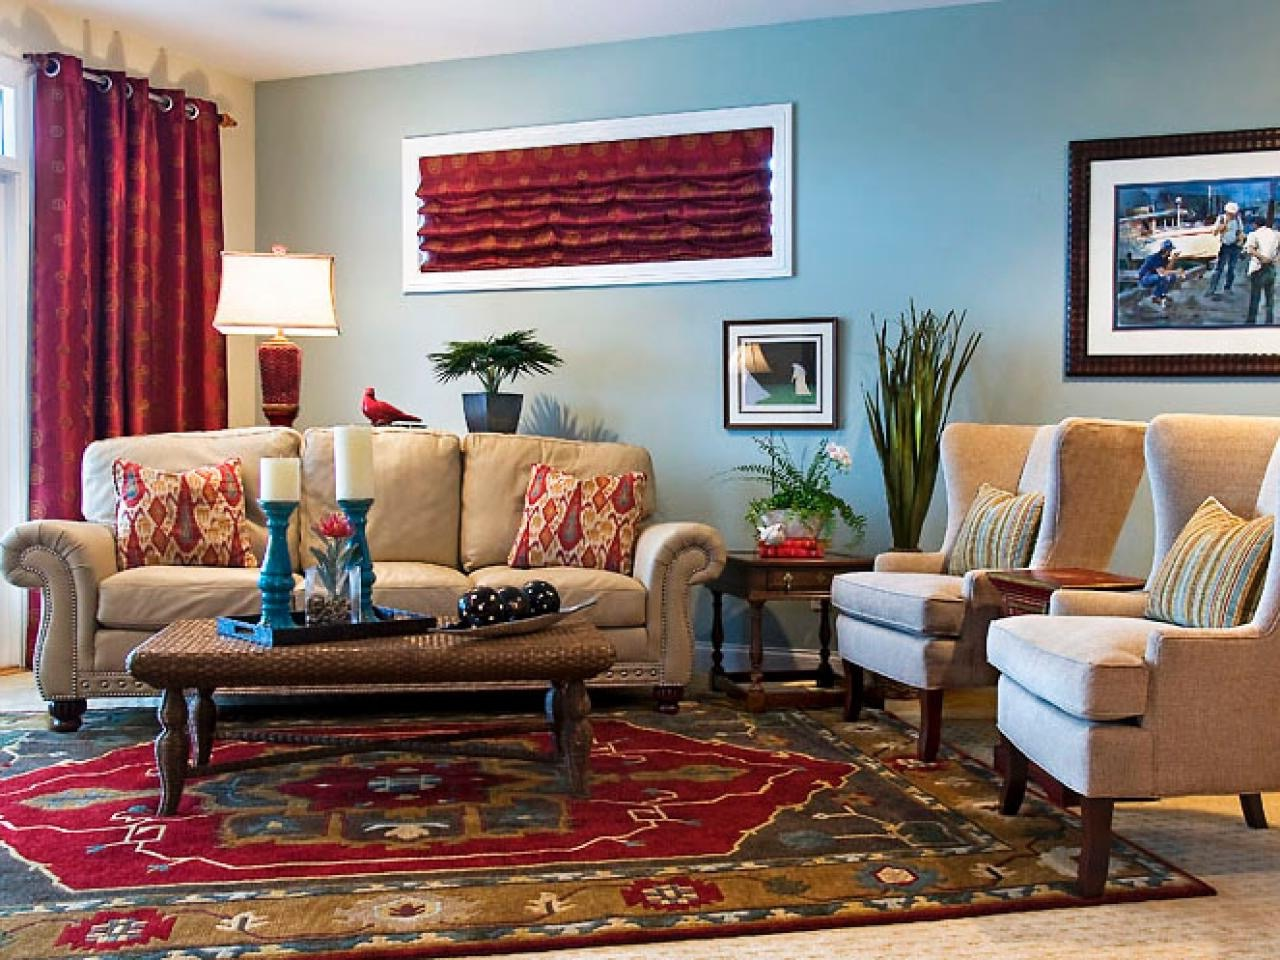 15 Middle Eastern Inspired Living Room Design Ideas 18422 Living Room Ideas